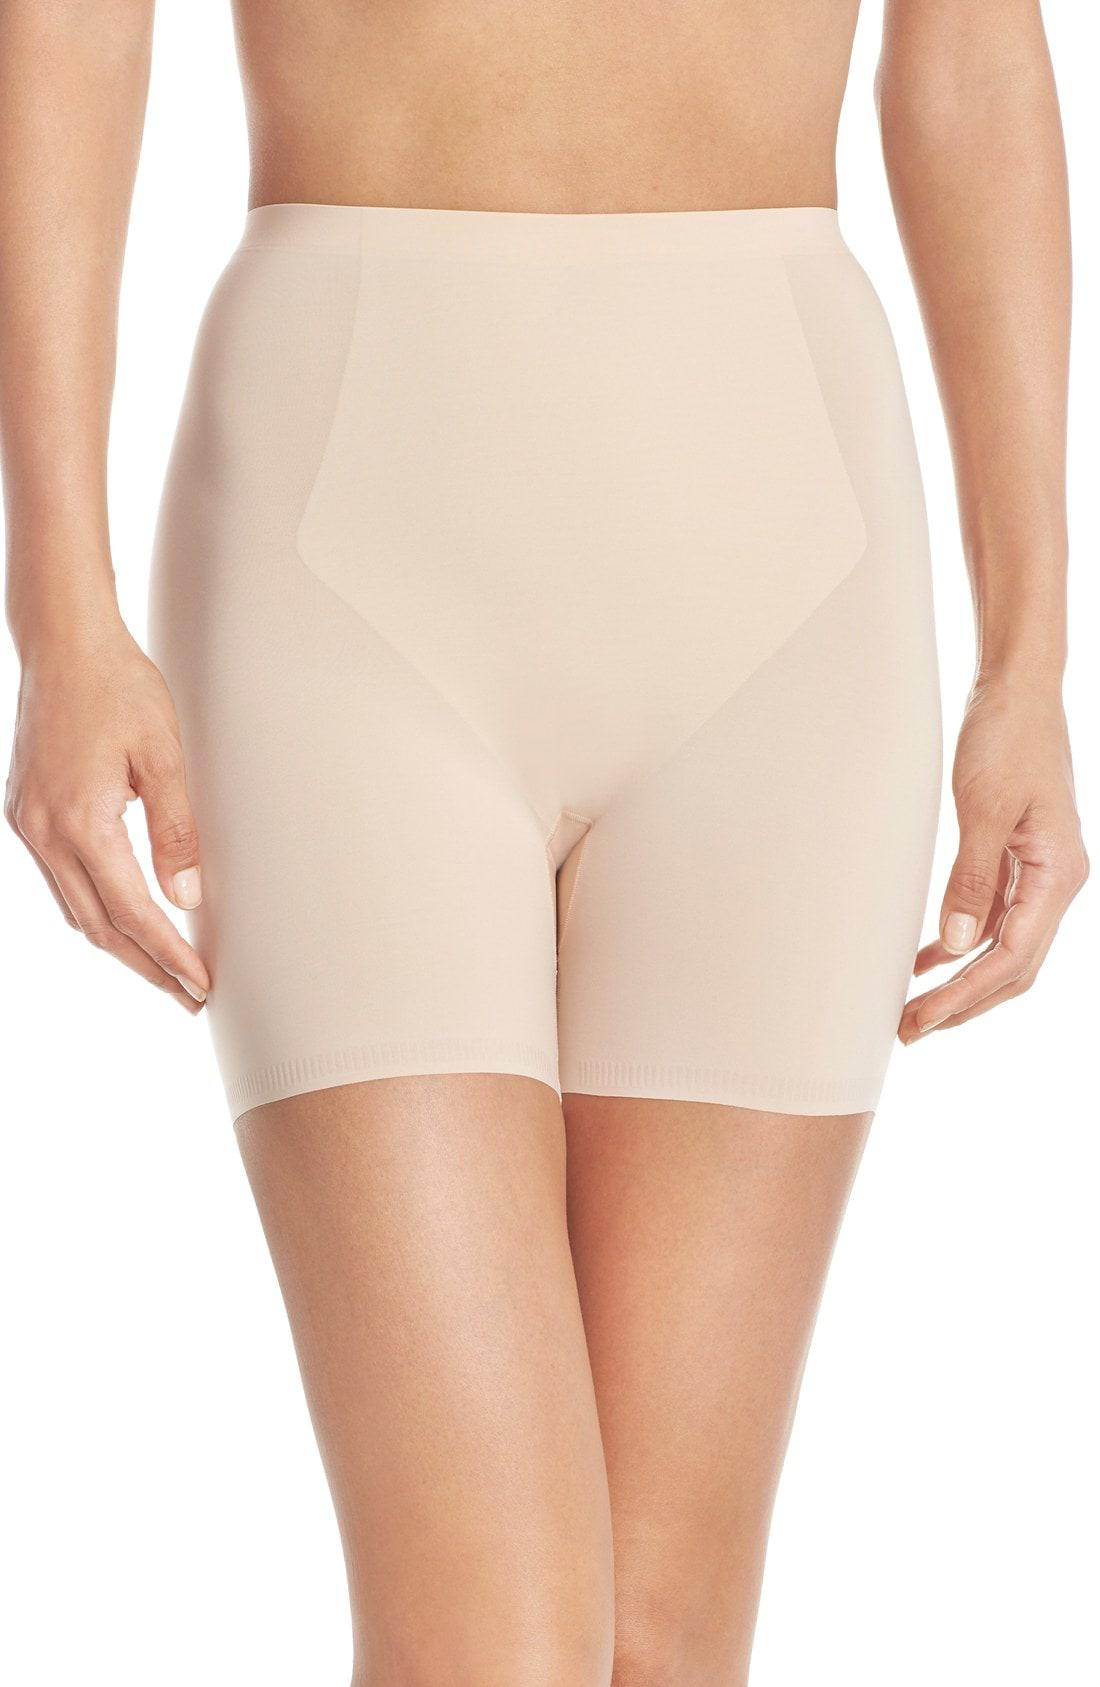 b1b5a32338d8b Lyst - Spanx Spanx Thinstincts Girl Shorts in Natural - Save 48%